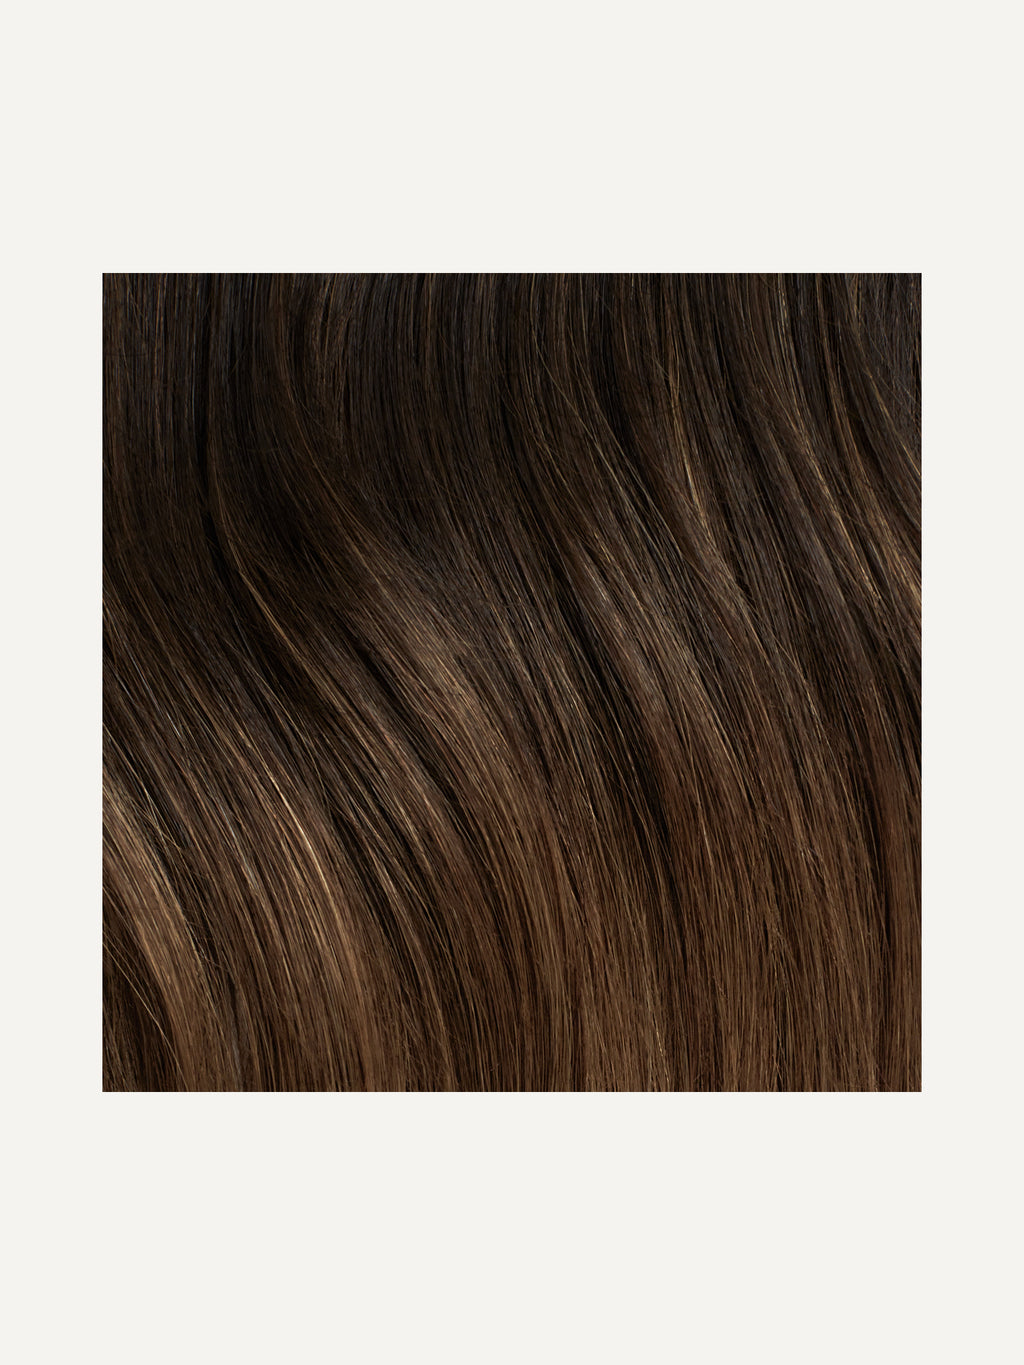 Luxy Hair - Sample Ombre Chestnut